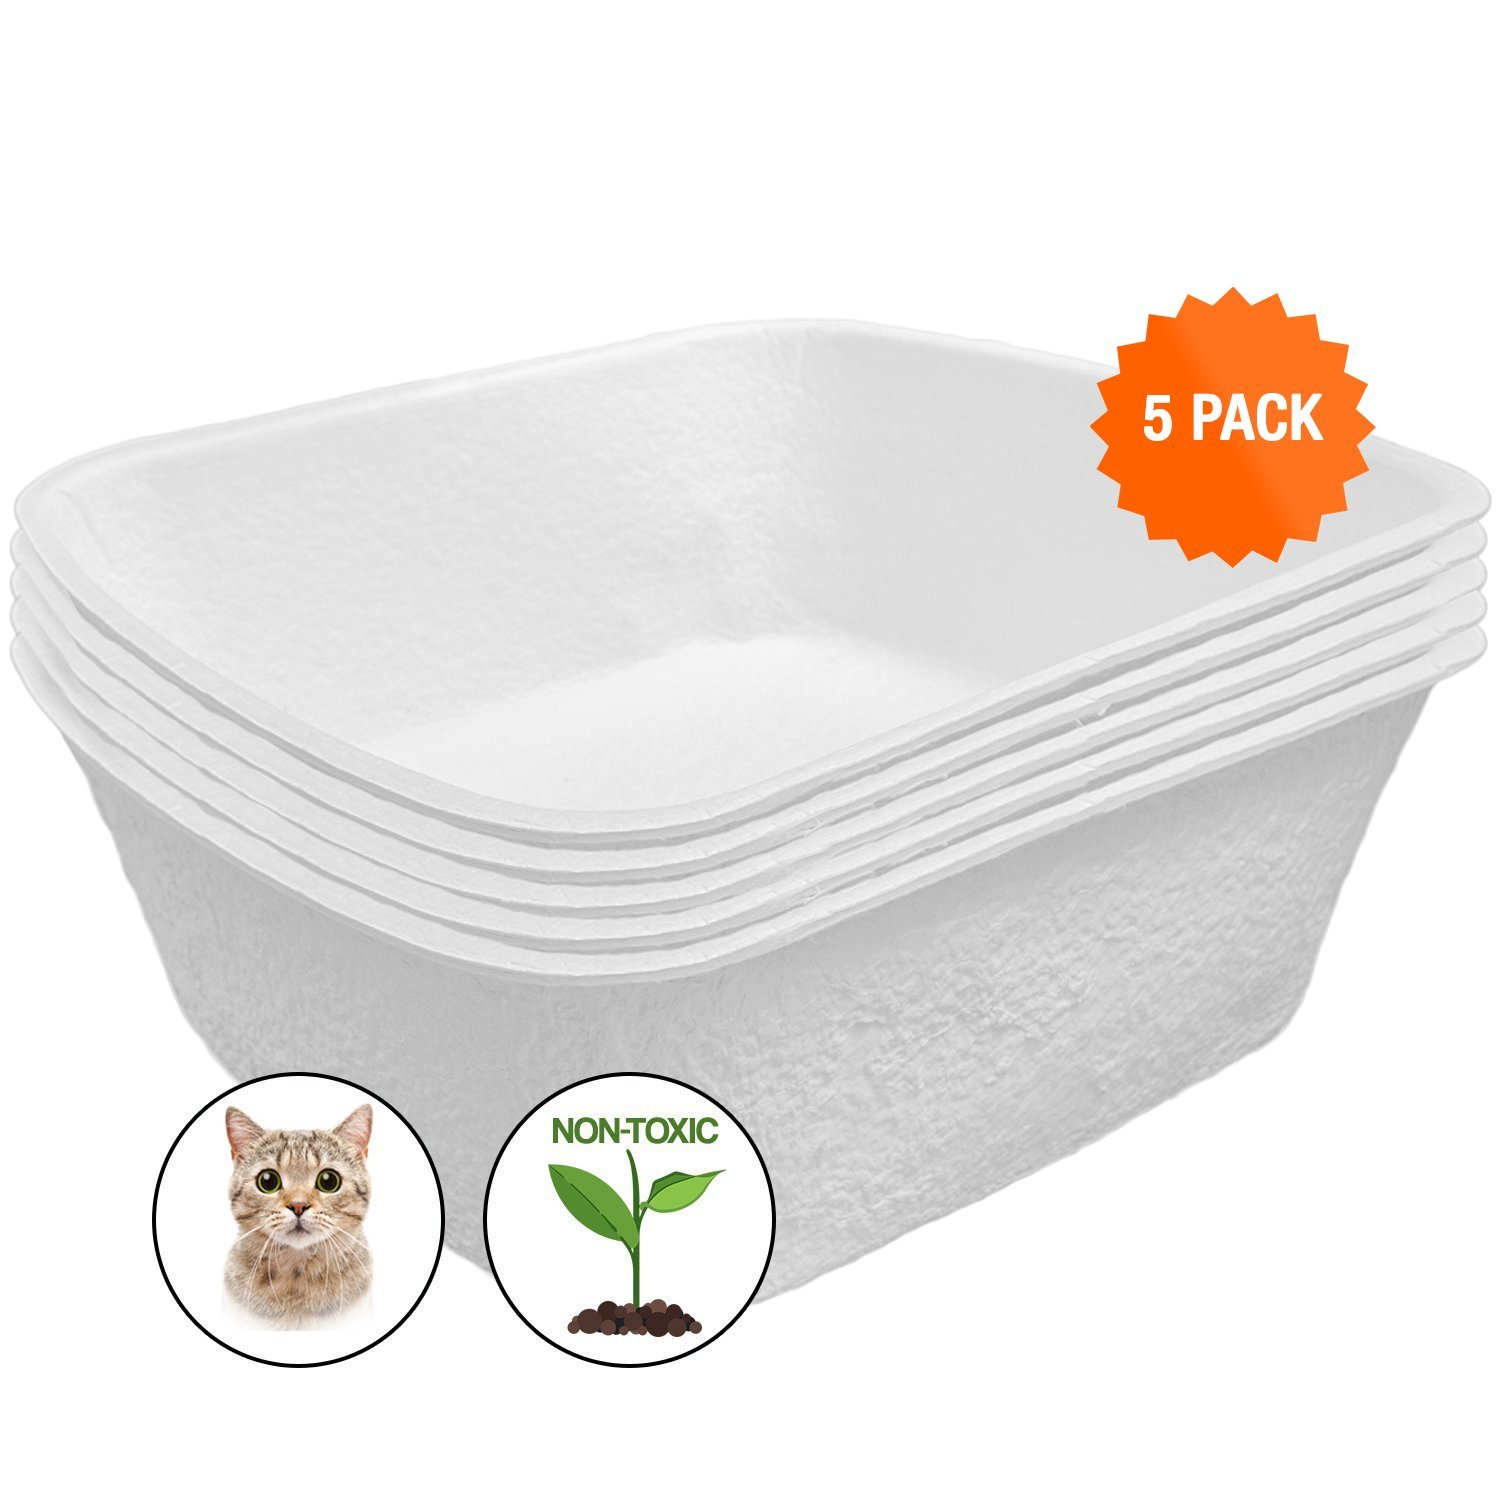 Easyology Large Disposable Litter Box - 5 Pack - Odor Control Disposable Litter Boxes for Cats - Durable Waterproof Disposable Kitty Litter Box - Travel Litter Box - Disposable Litter Boxes for Cats by Easyology